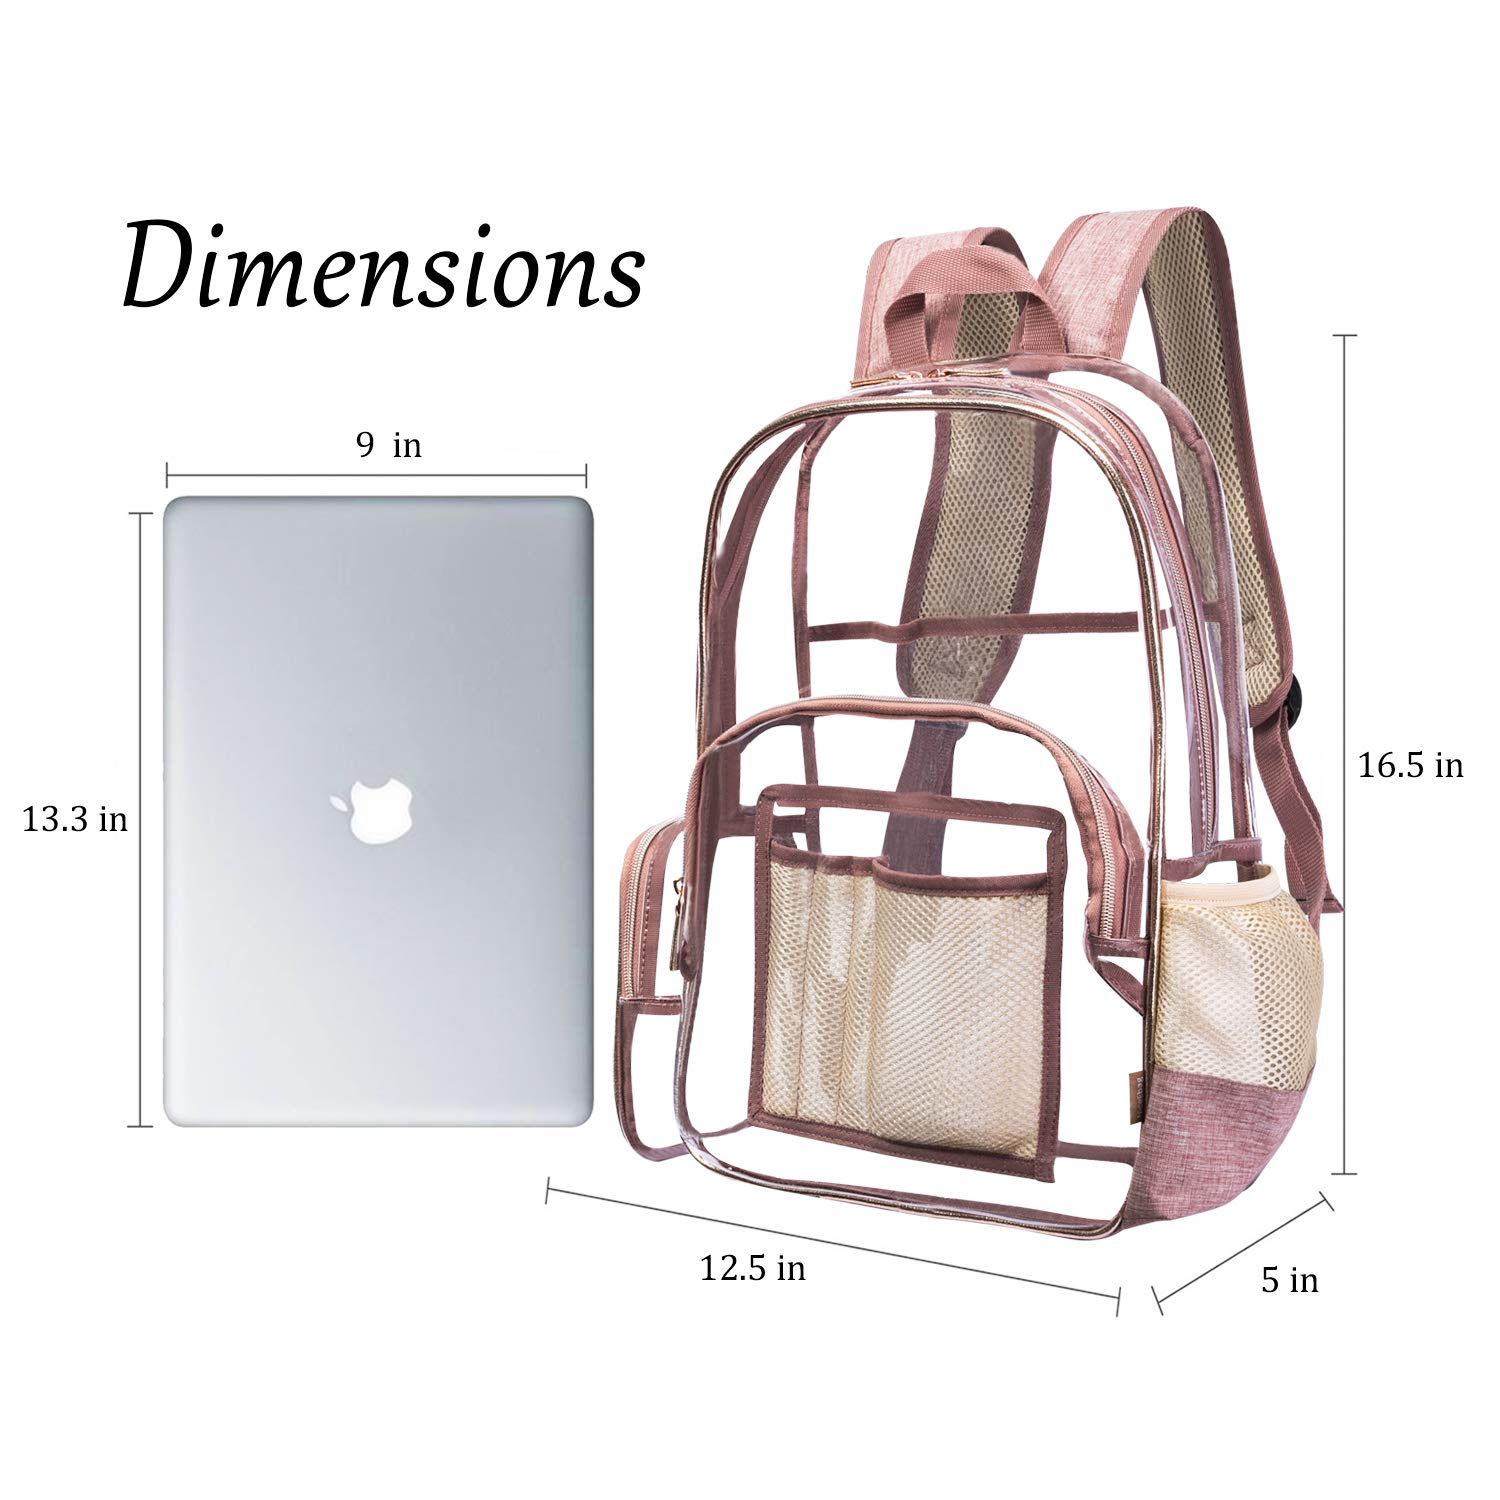 NiceEbag Clear Backpack with Cosmetic Bag & Case, Clear Transparent PVC Multi-pockets School Backpack Outdoor Bookbag Travel Makeup Quart Luggage Pouch Organizer Fit 15.6 Inch Laptop (Rose Gold) by NiceEbag (Image #6)